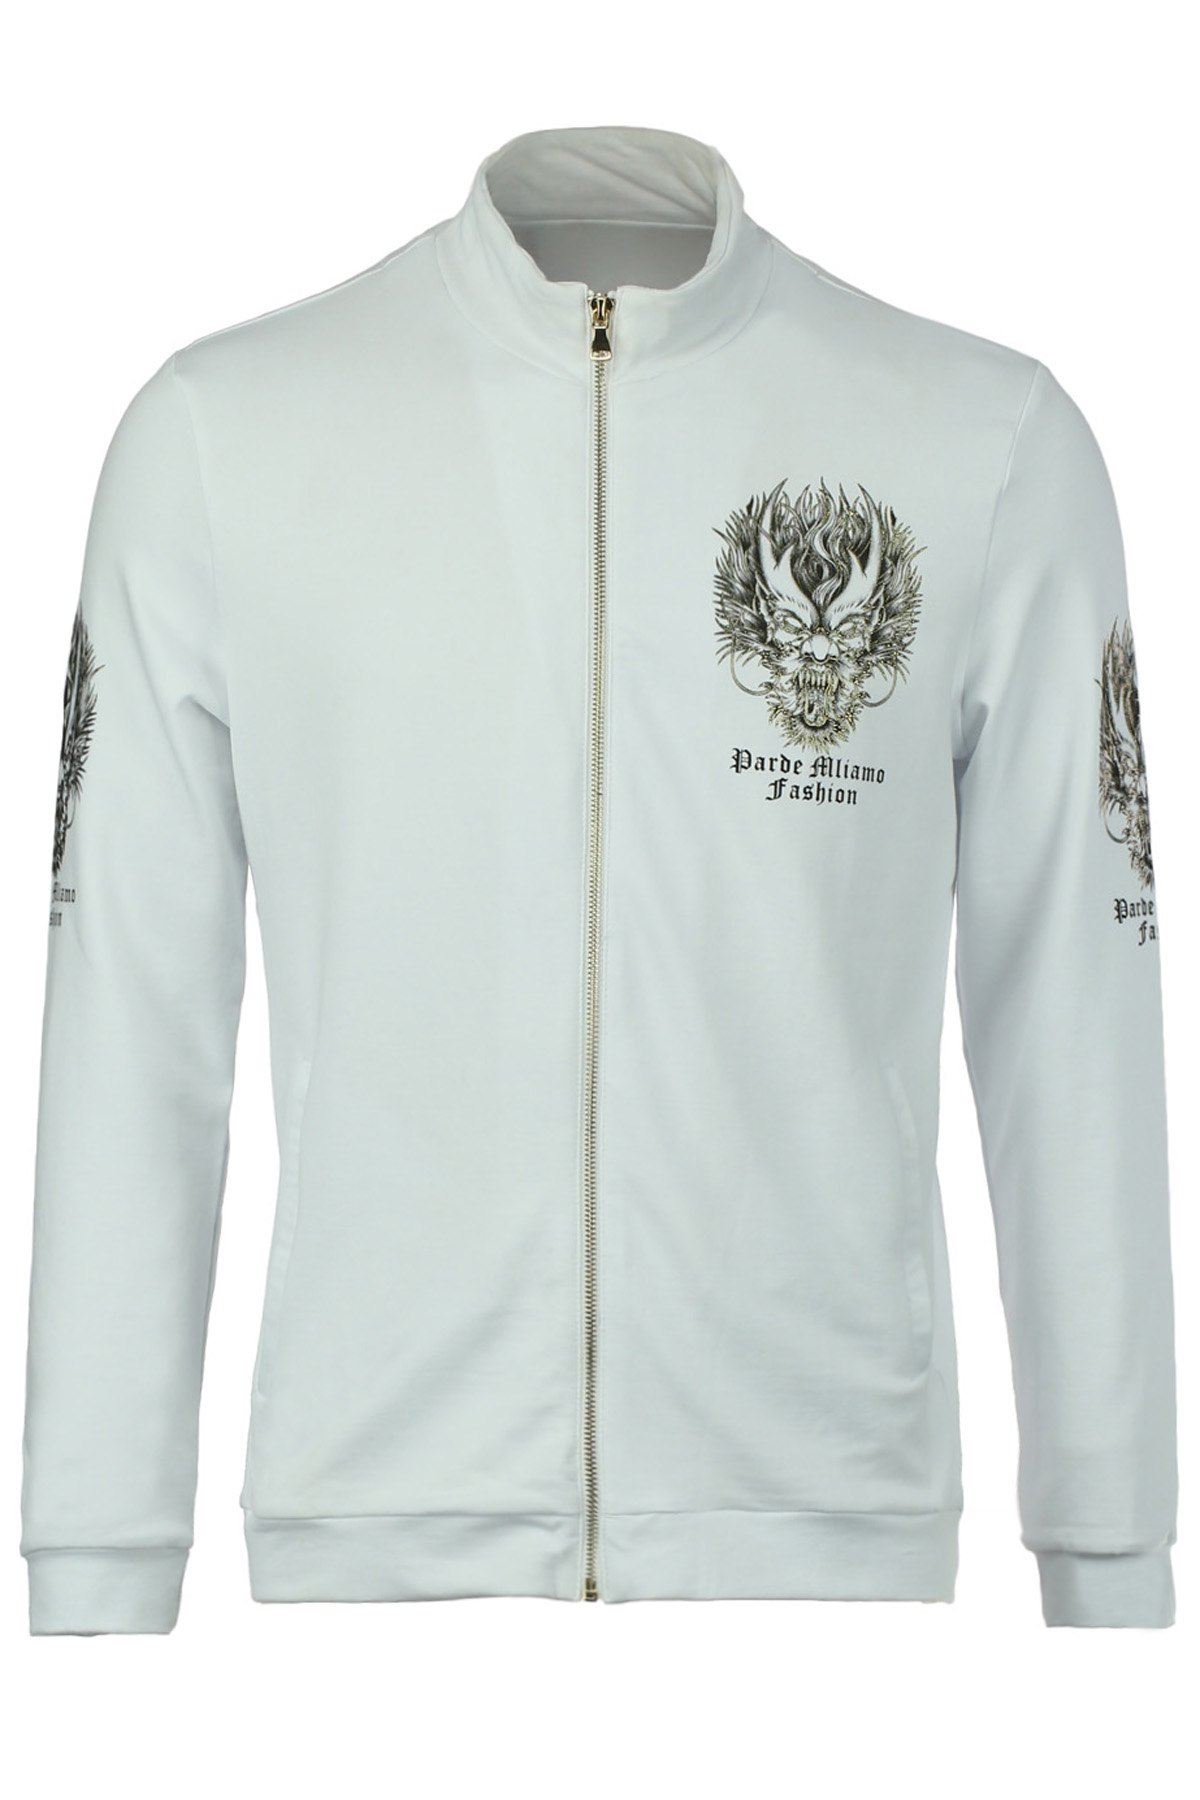 Stand Collar Dragon Head Letter Print Slimming Long Sleeve Men's Jacket - WHITE 5XL